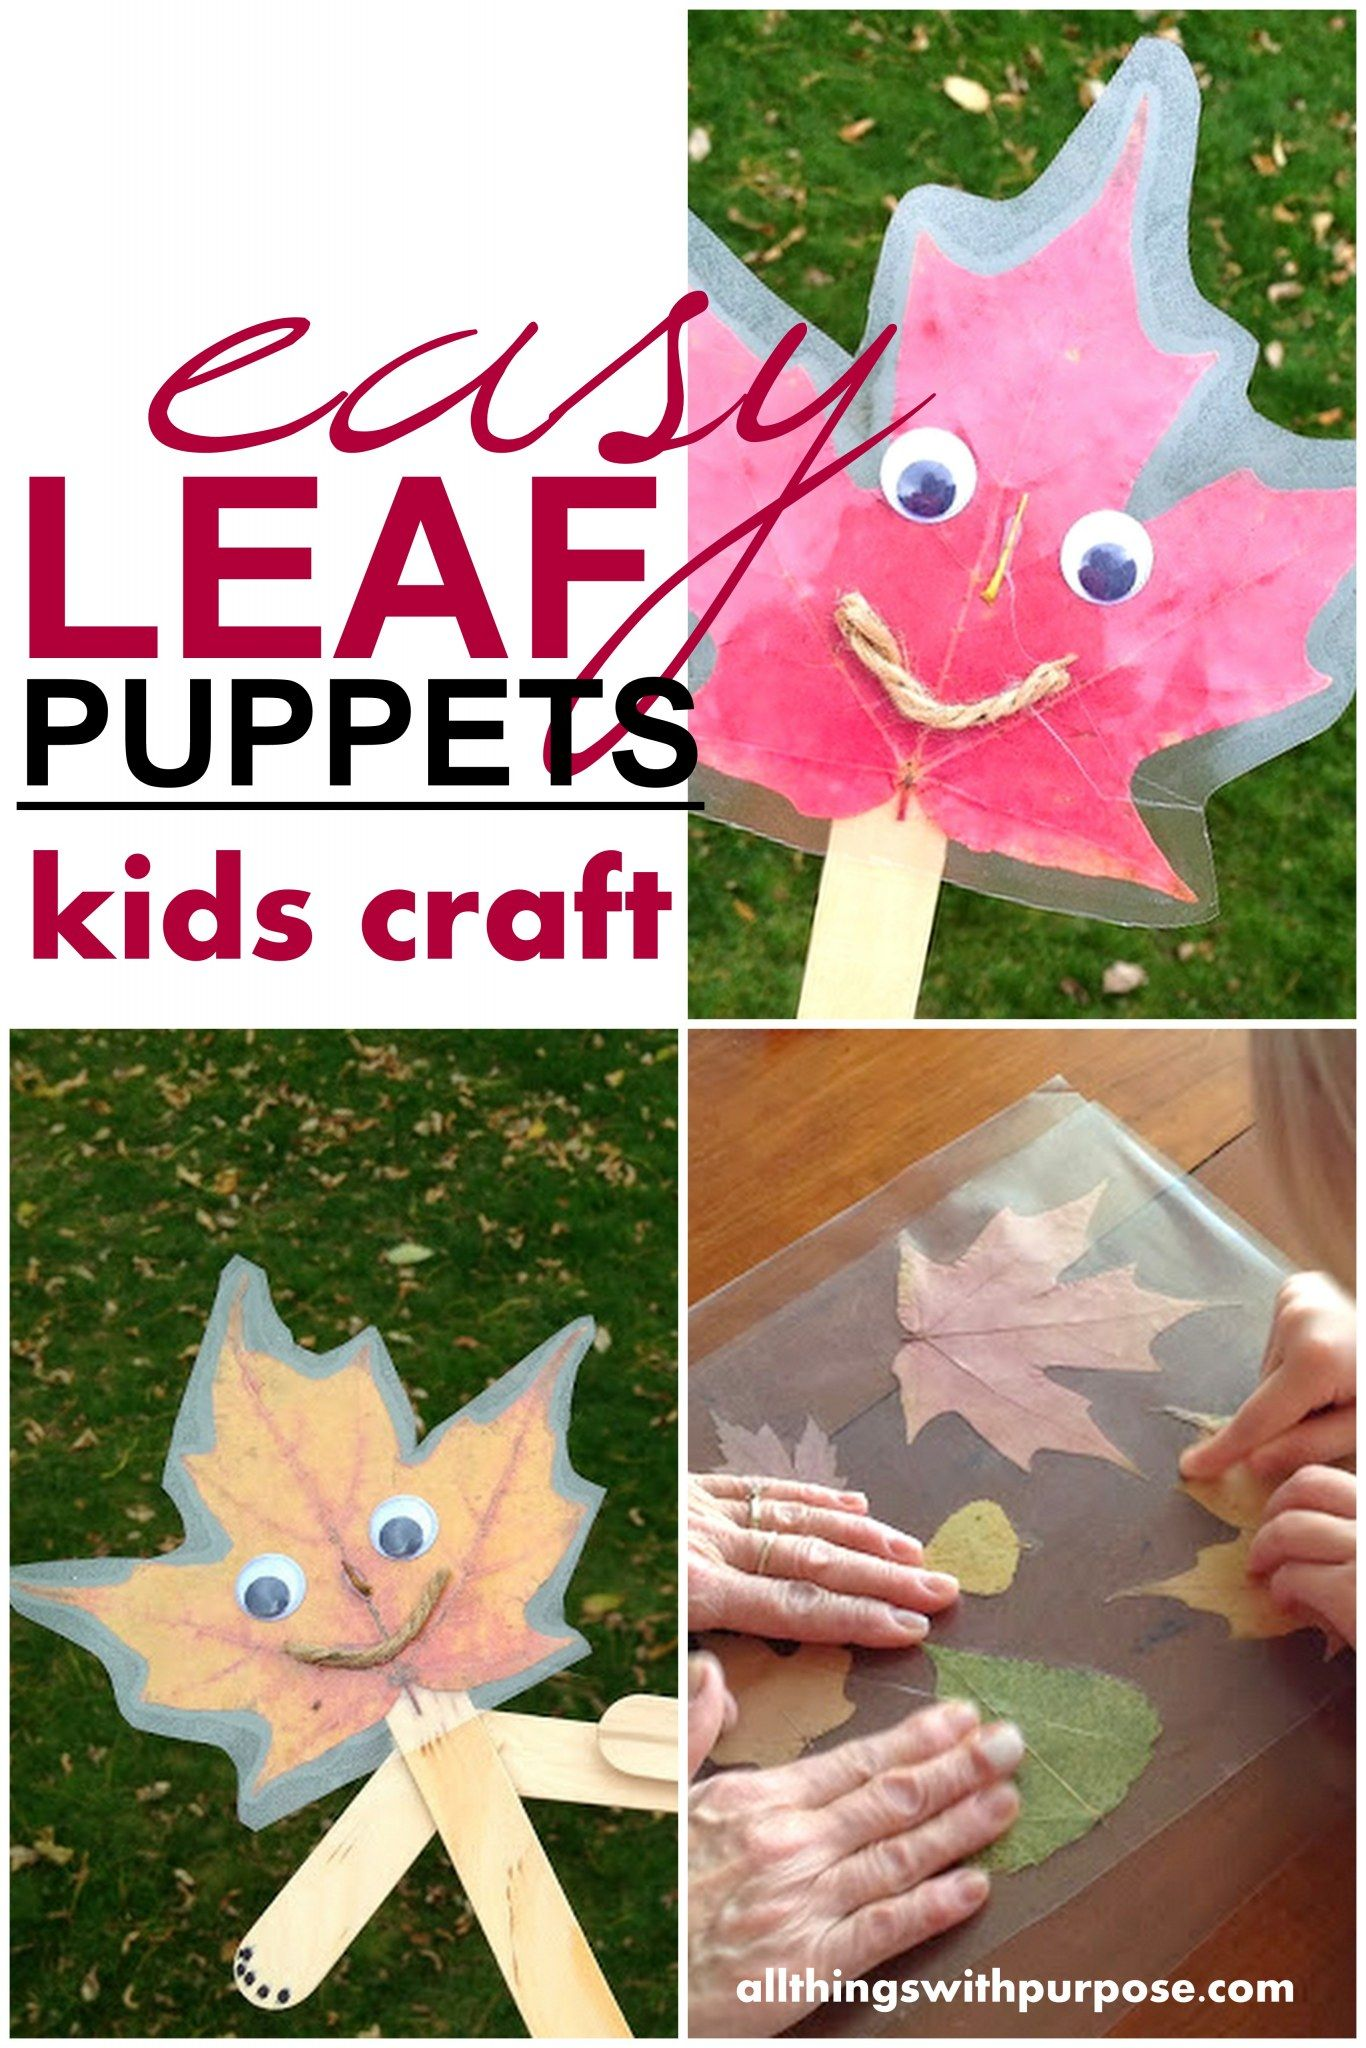 Fall Leaf Puppet Craft - Fall crafts for kids, Easy halloween crafts, Fall crafts, Crafts for kids, Fun fall crafts, Halloween crafts - This super easy Fall craft for kids will make a fun project! Collect colorful Fall leaves, craft sticks and googly eyes  Simple supplies you have on hand